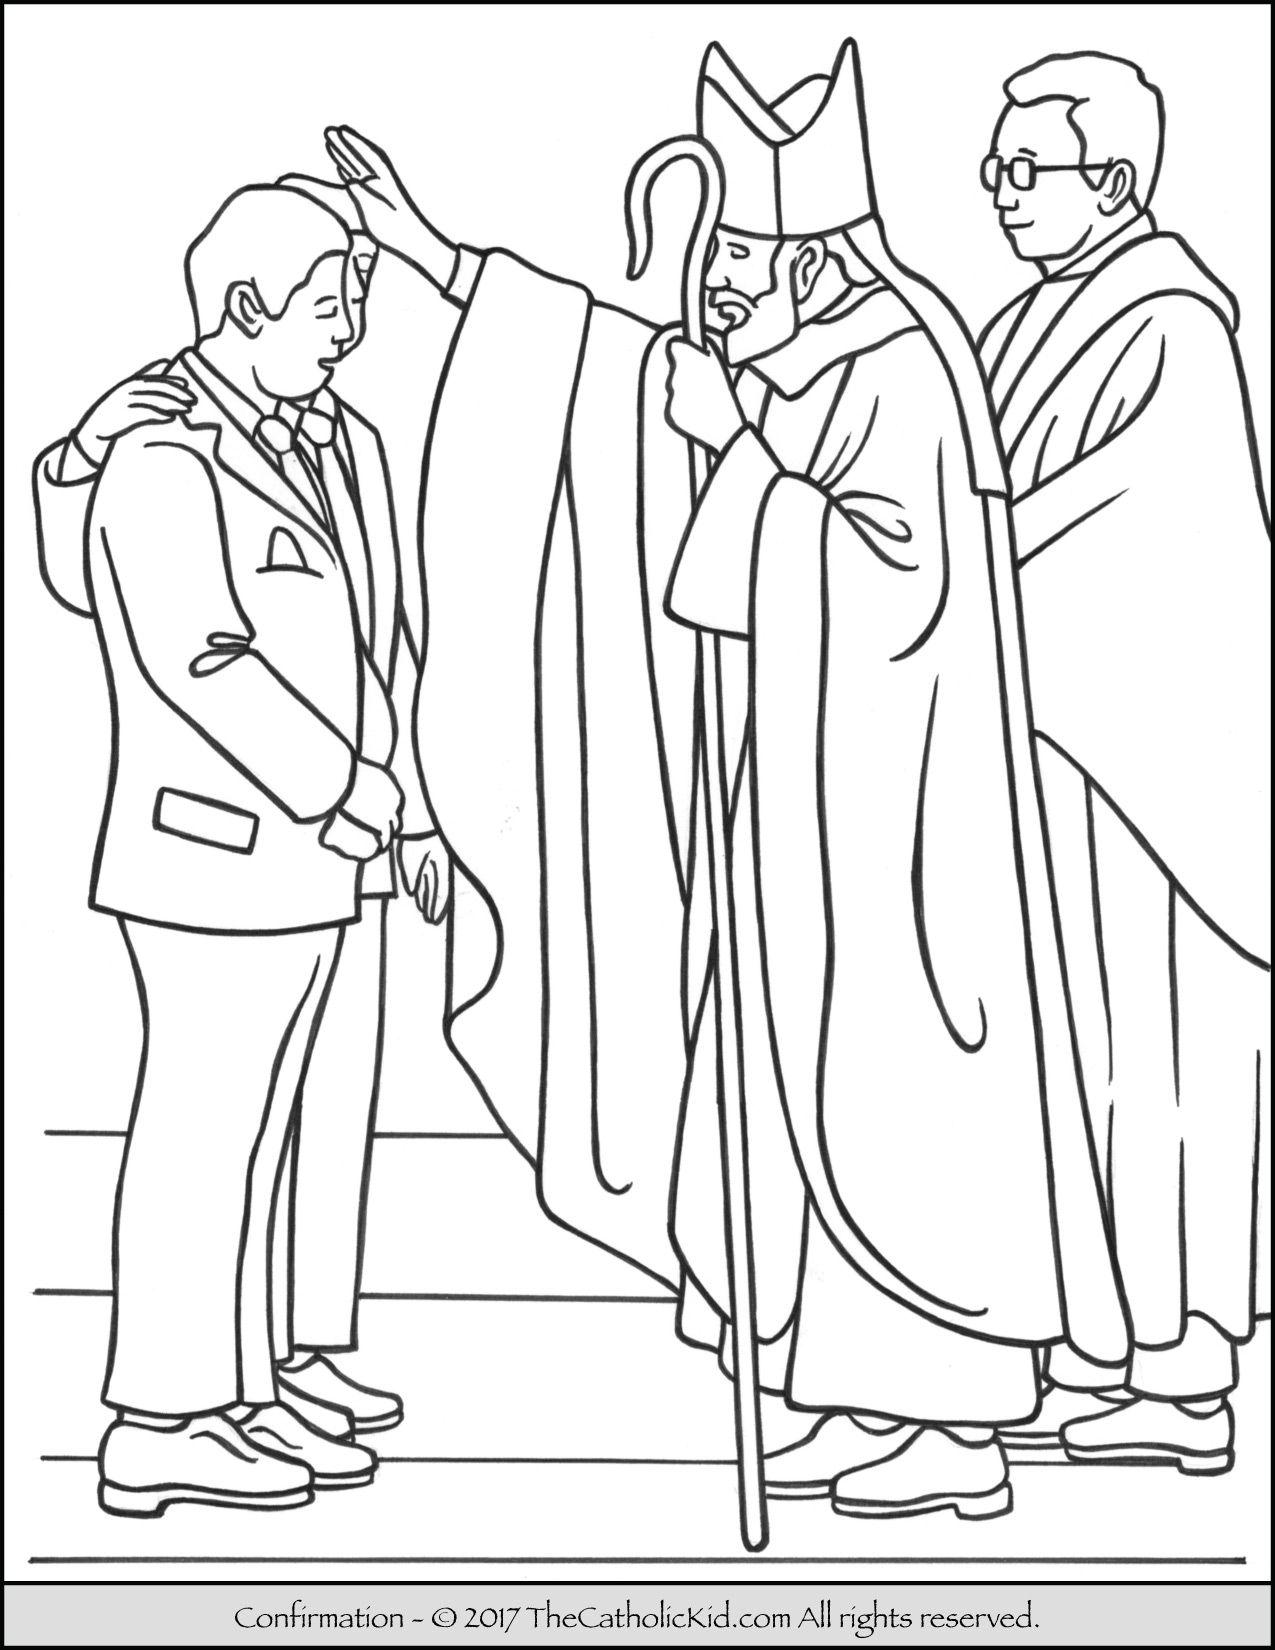 Sacrament Of Confirmation Coloring Page Thecatholickid Com